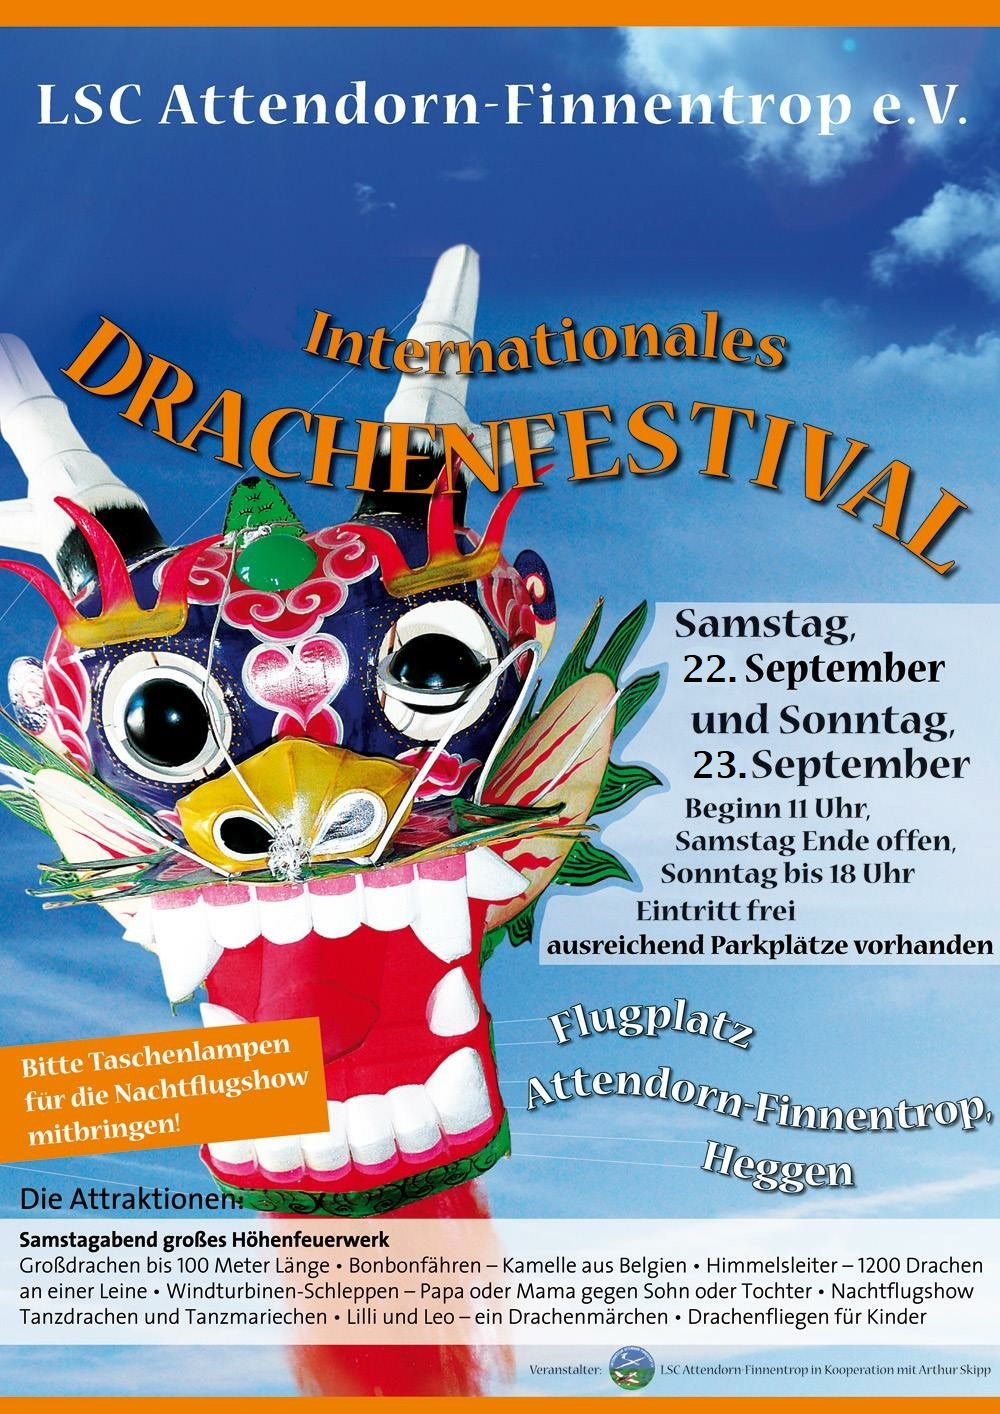 14. Internationales Drachenfestival am 22. & 23. September 2018